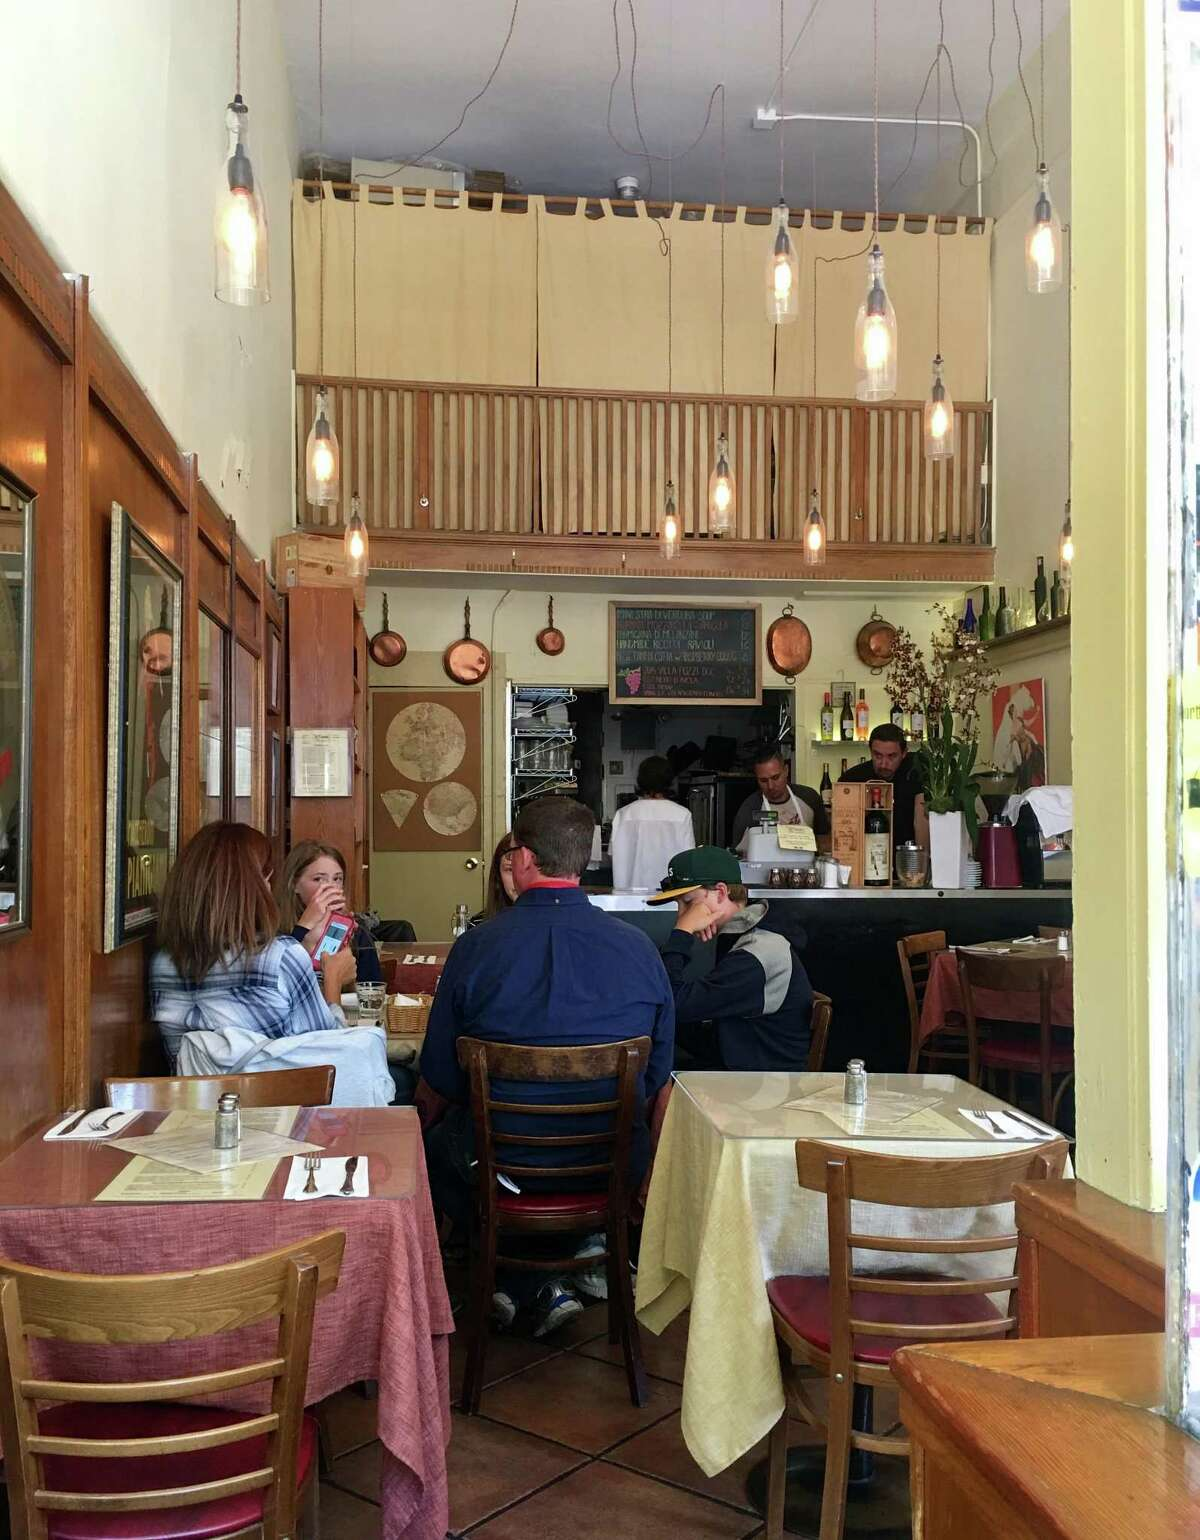 L'Osteria del Forno has served North Beach for 26 years.